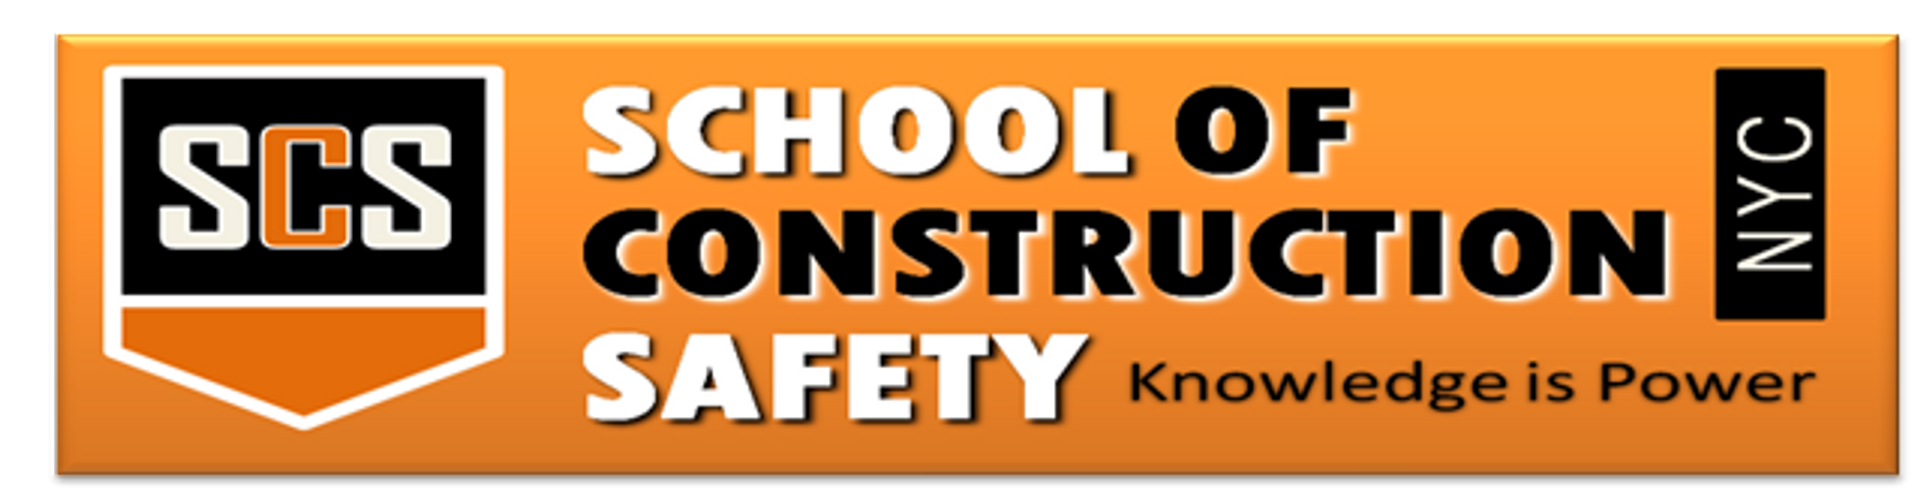 OSHA | School Of Construction Safety